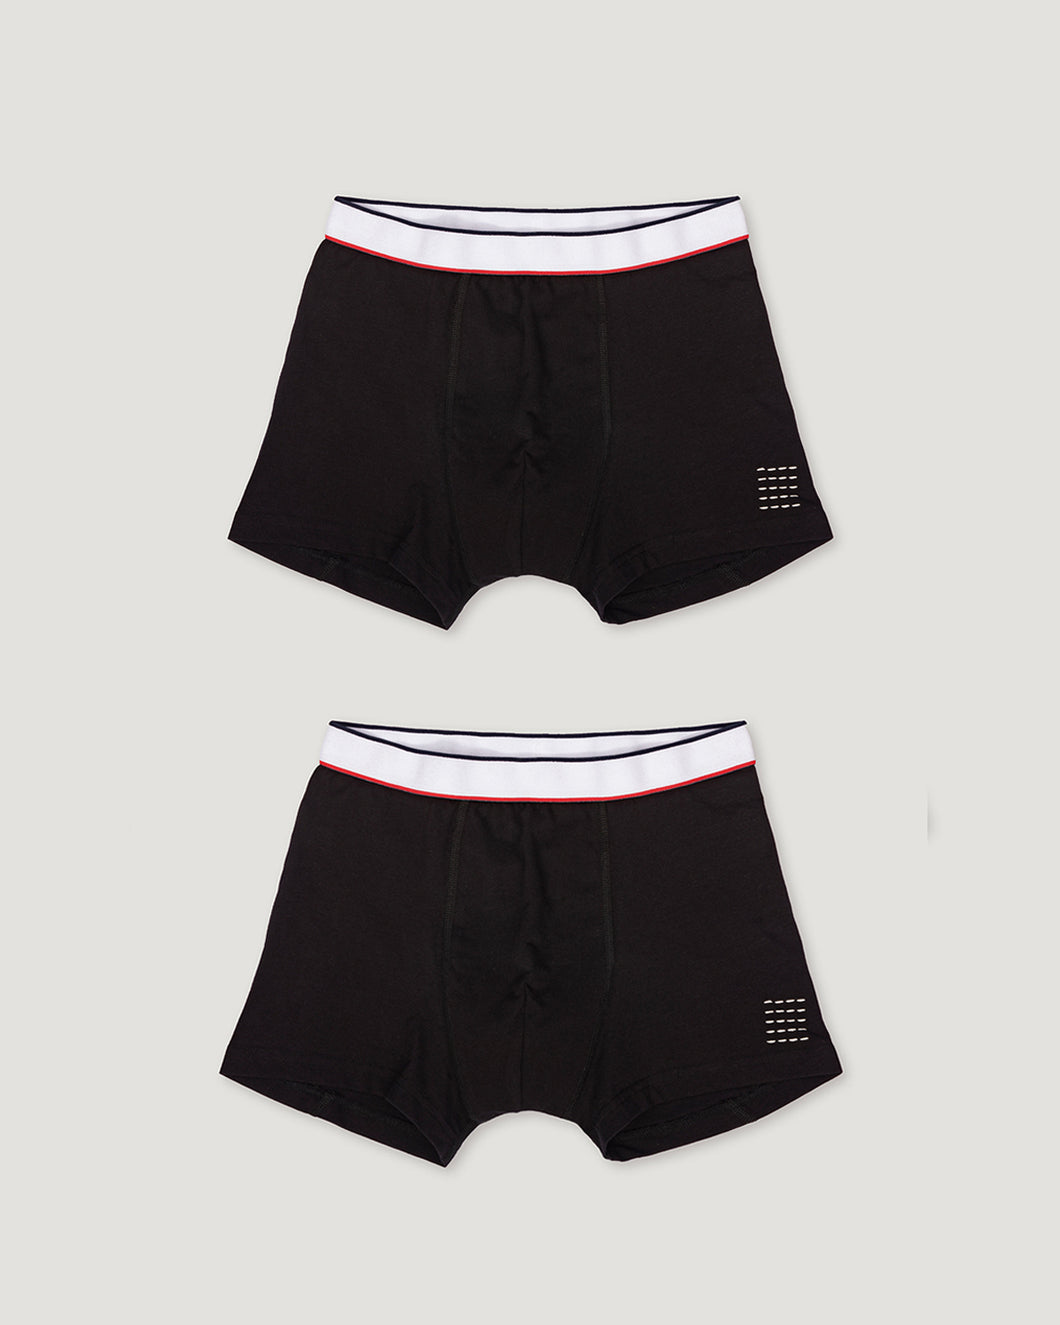 BOXER SHORT BLACK- 2 PACK-Boxer short-Blankdays